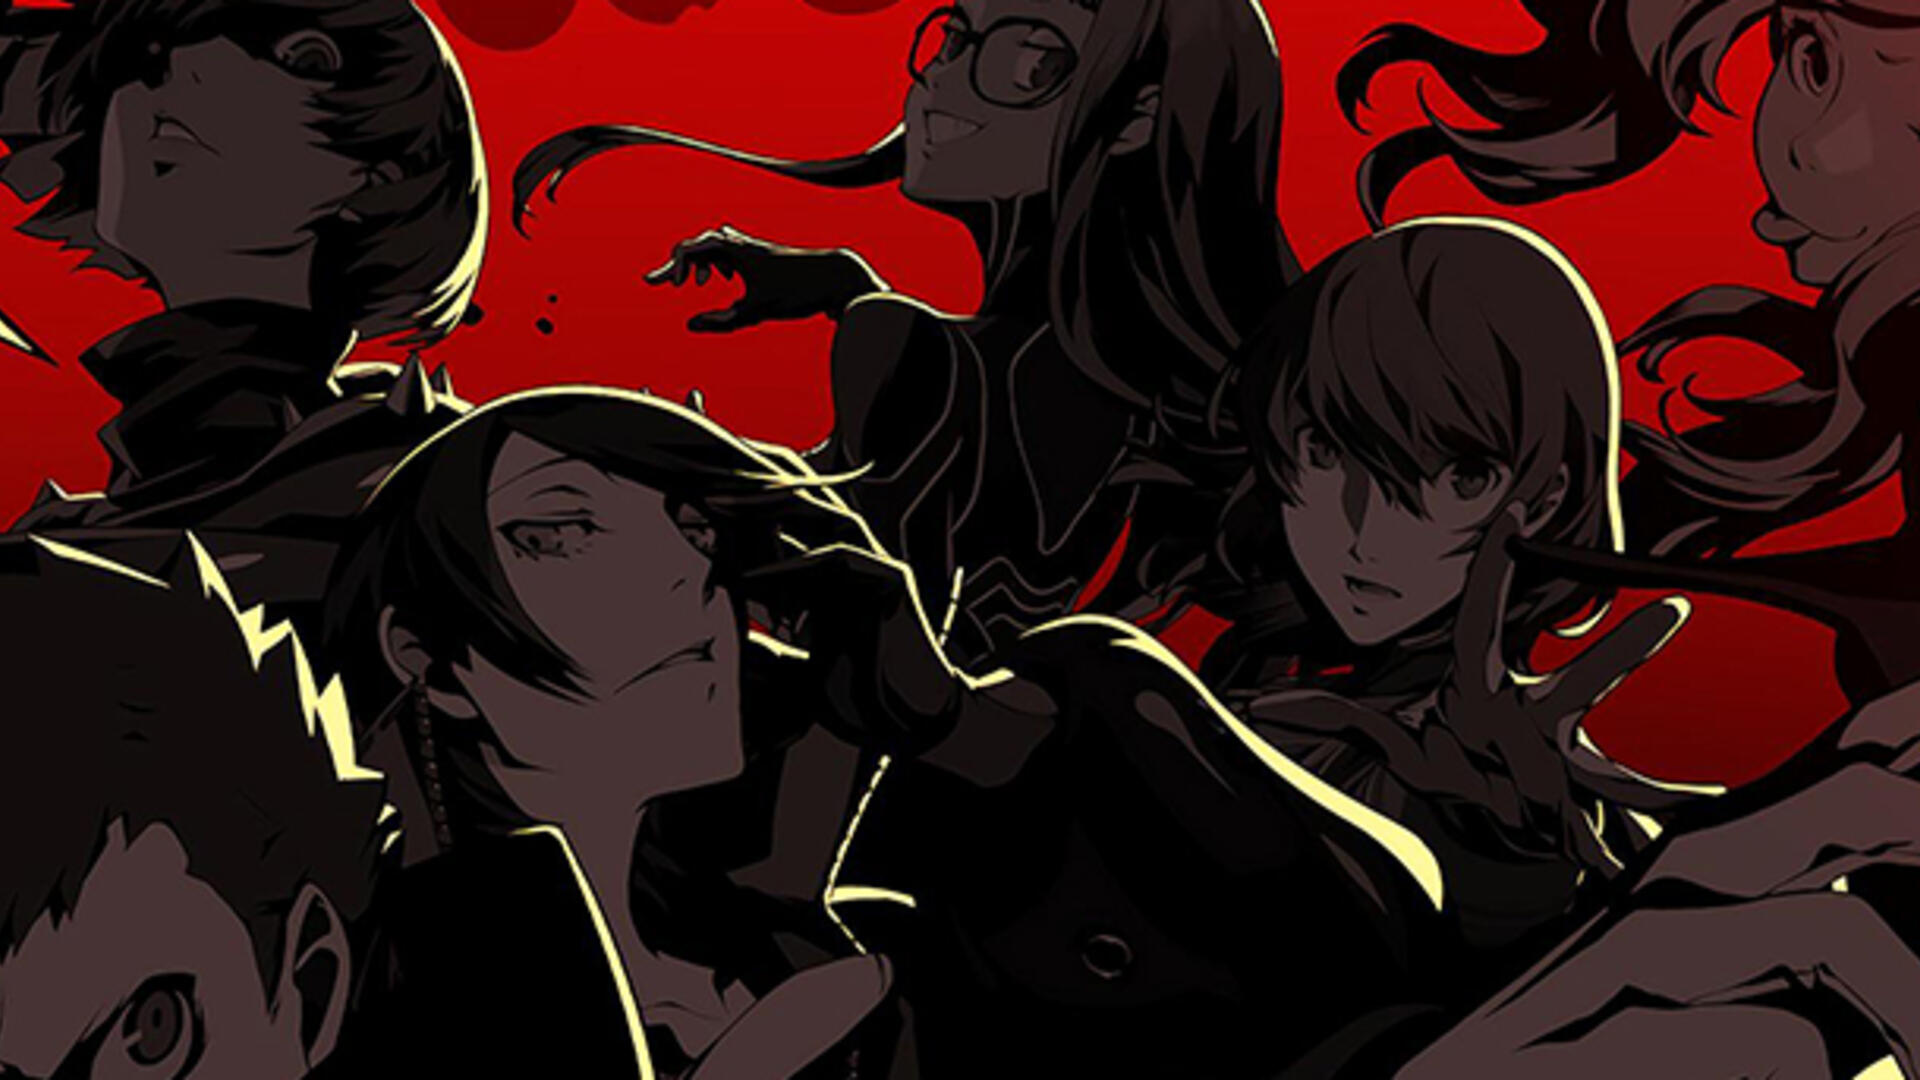 Update] Atlus Issued a DMCA Takedown on a PS3 Emulator